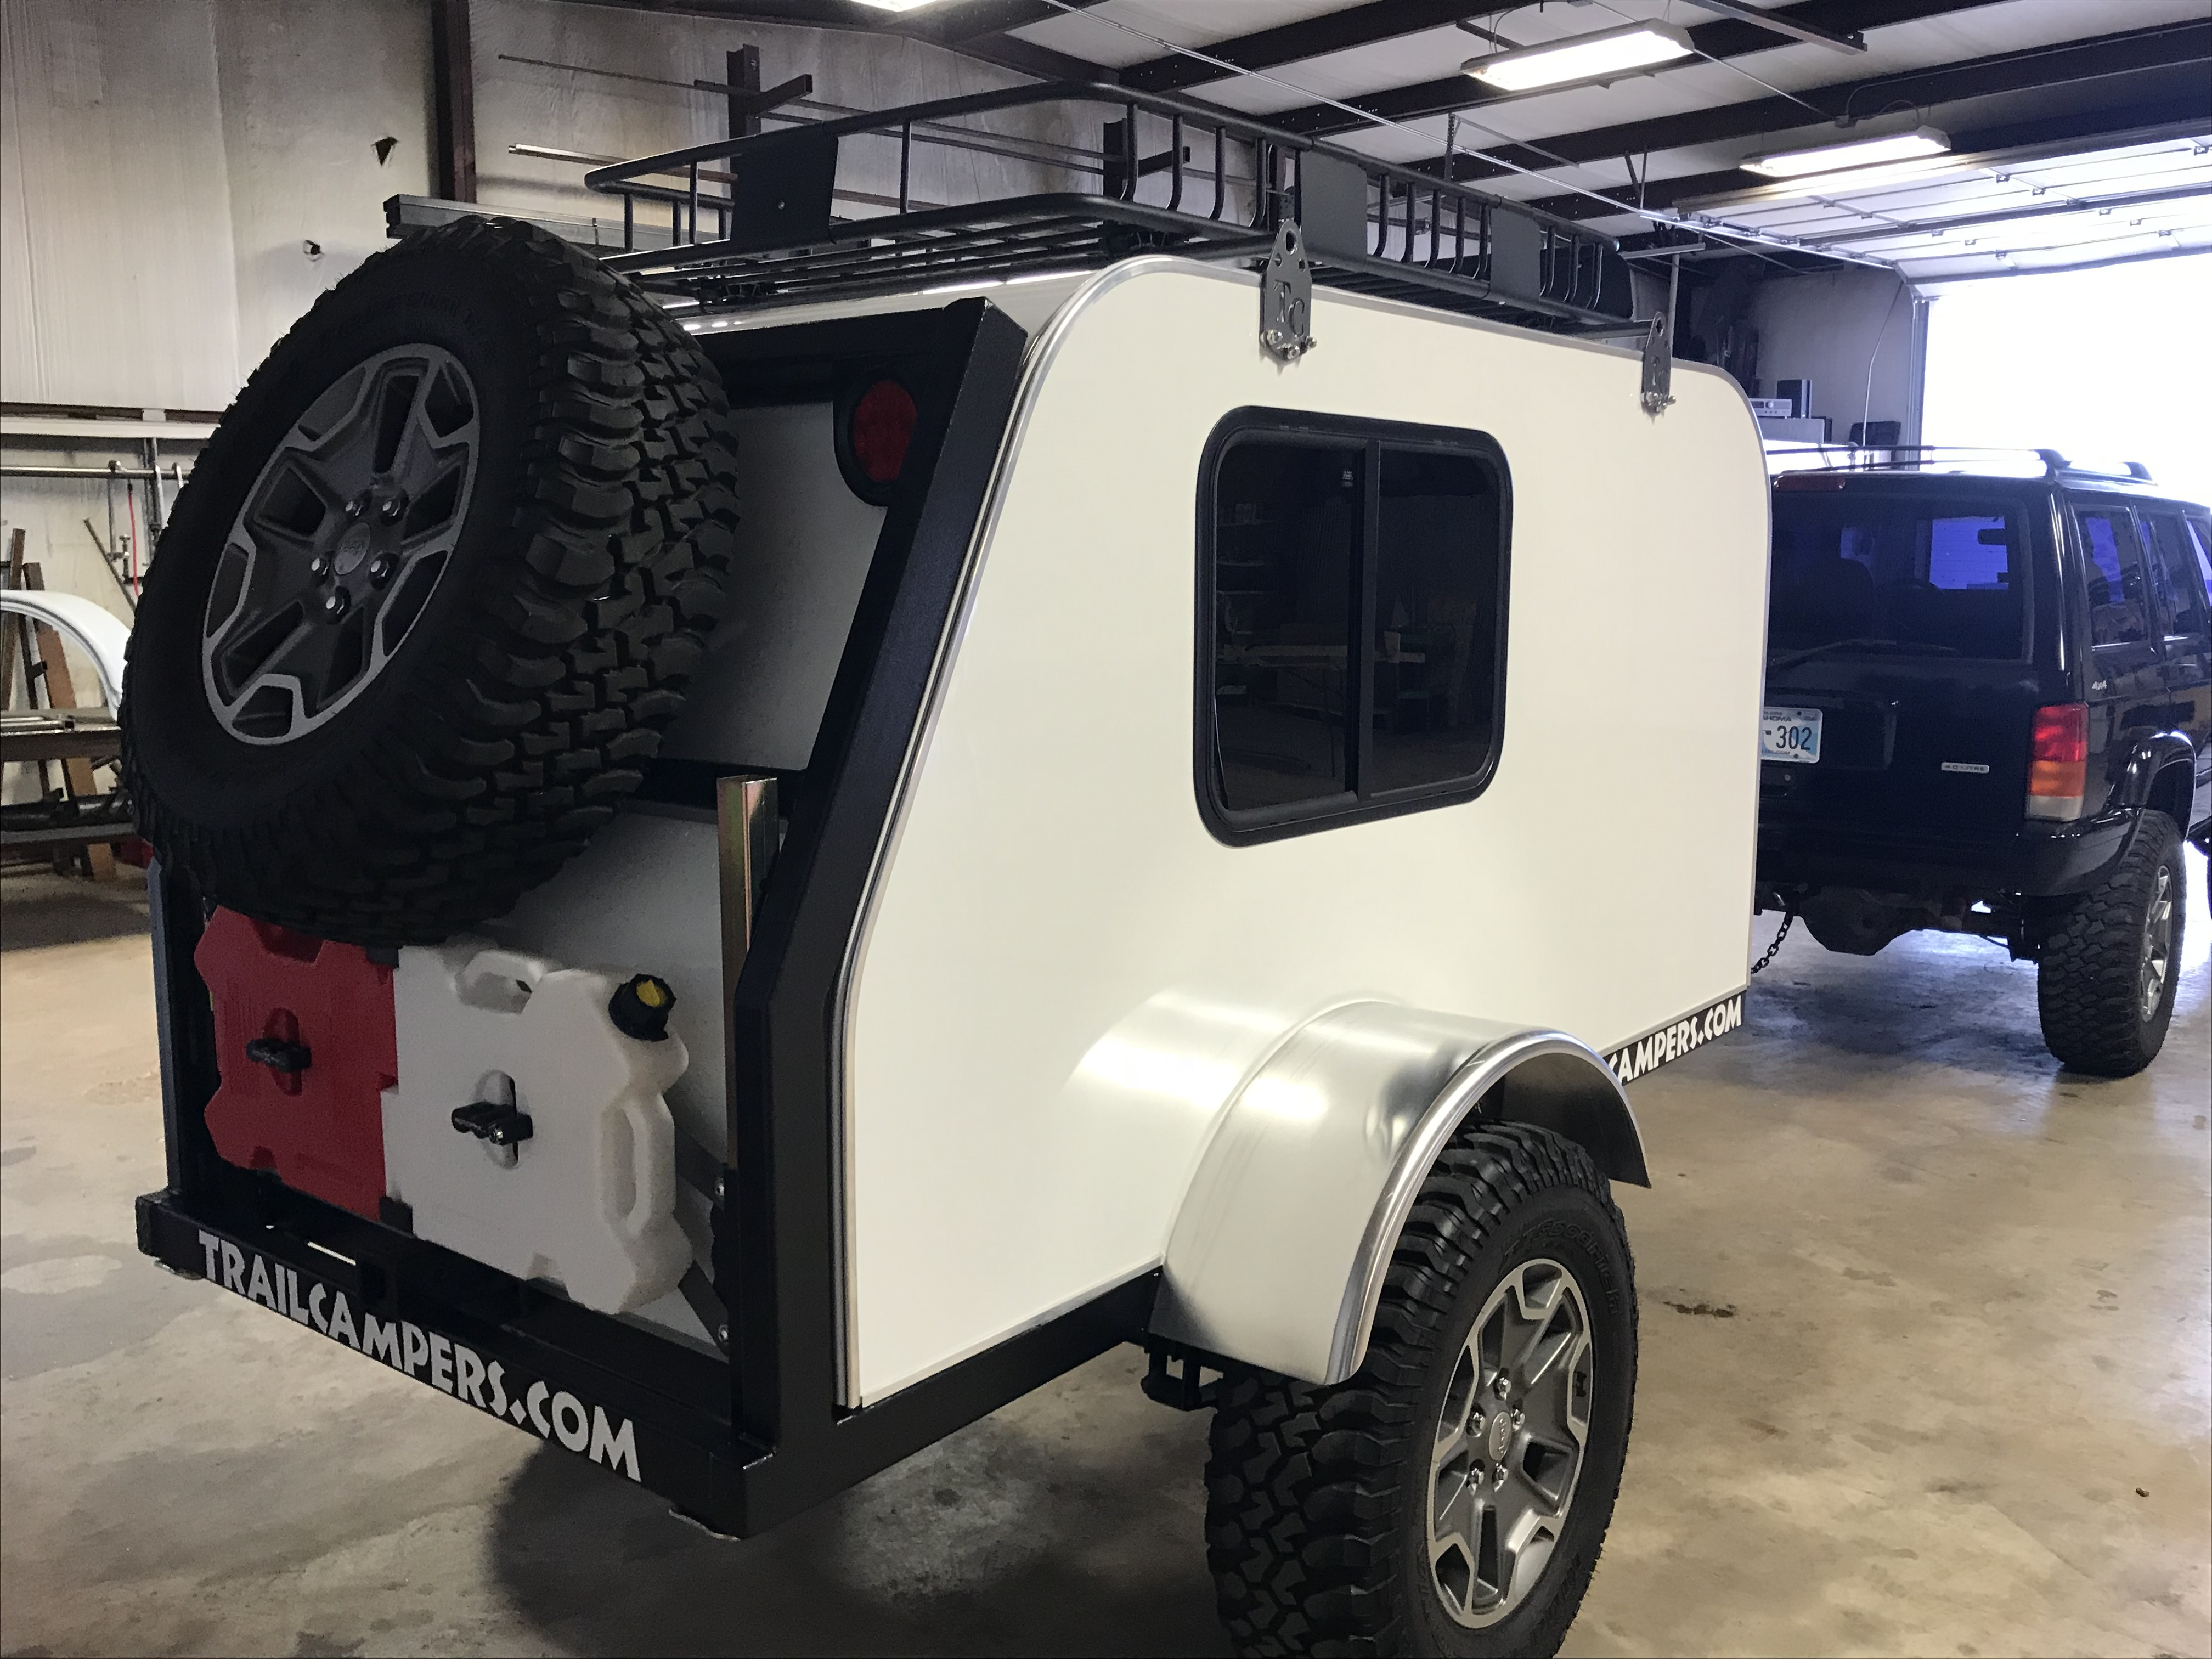 Trailcampers Com Oklahoma Offroad Jeep Expedition Safari Camper